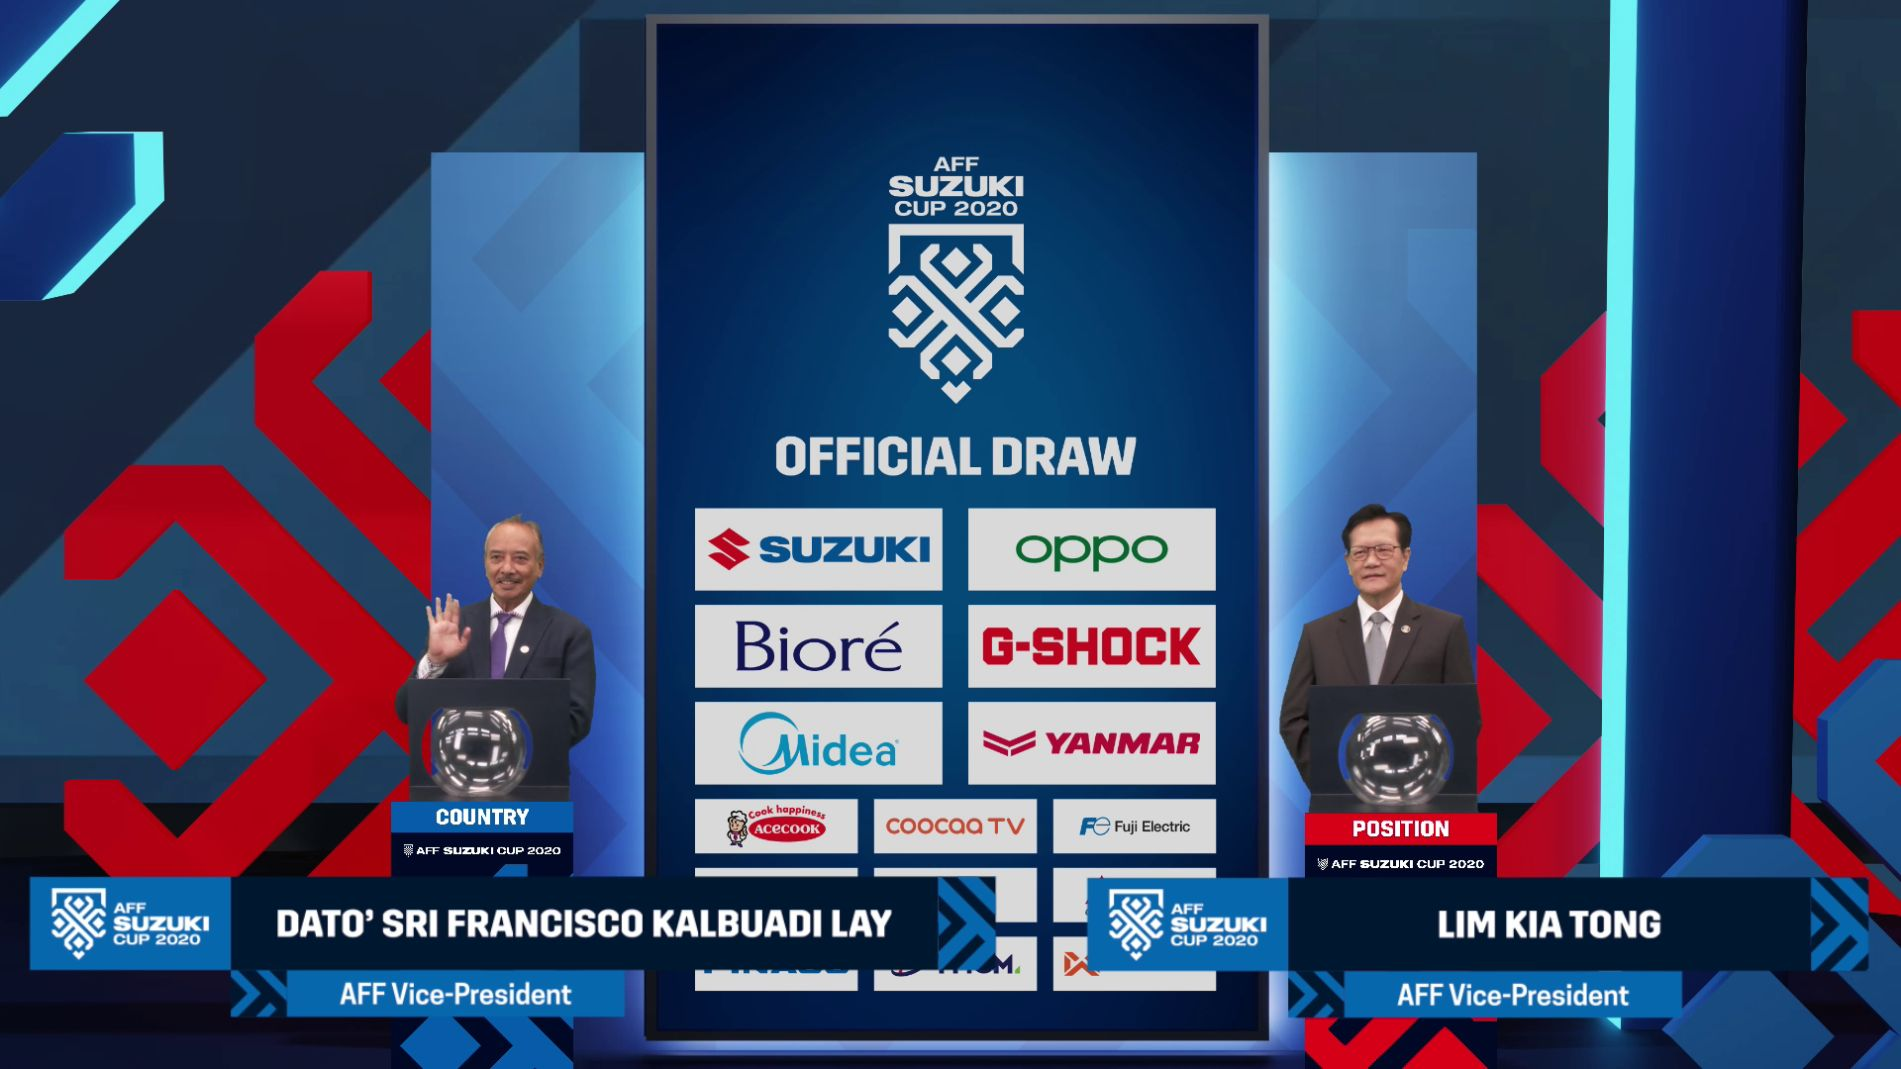 Aff Suzuki Cup 2020 Official Draw Aff Vps With Sponsors Backdrop With L3 Gfx